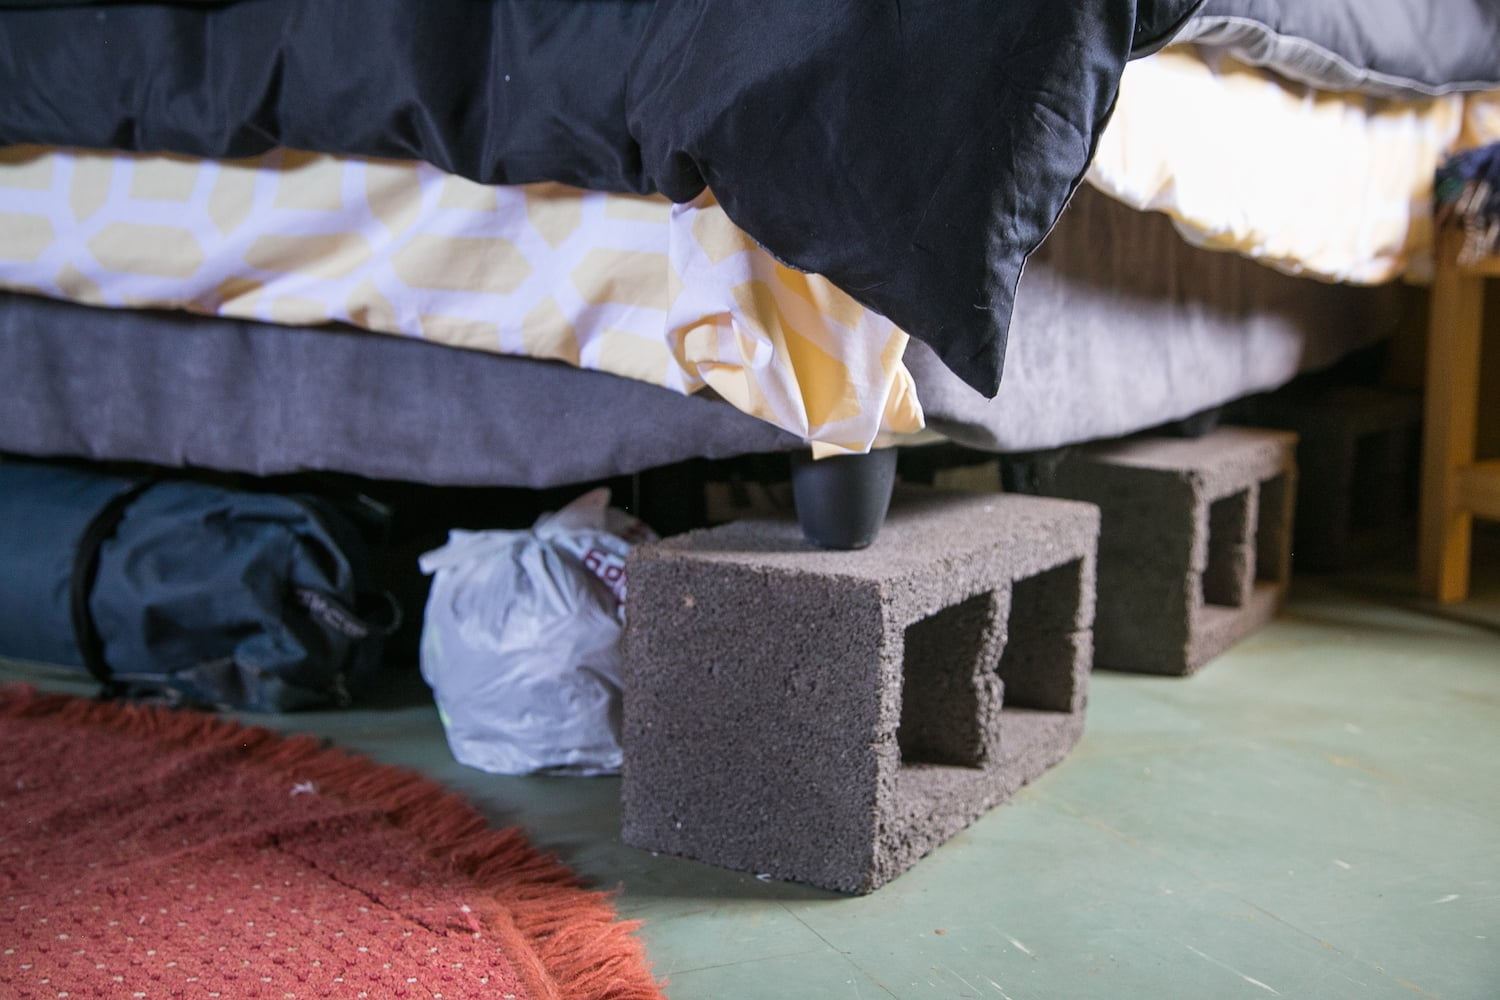 Free concrete blocks to lift my bed and create a space for storage.